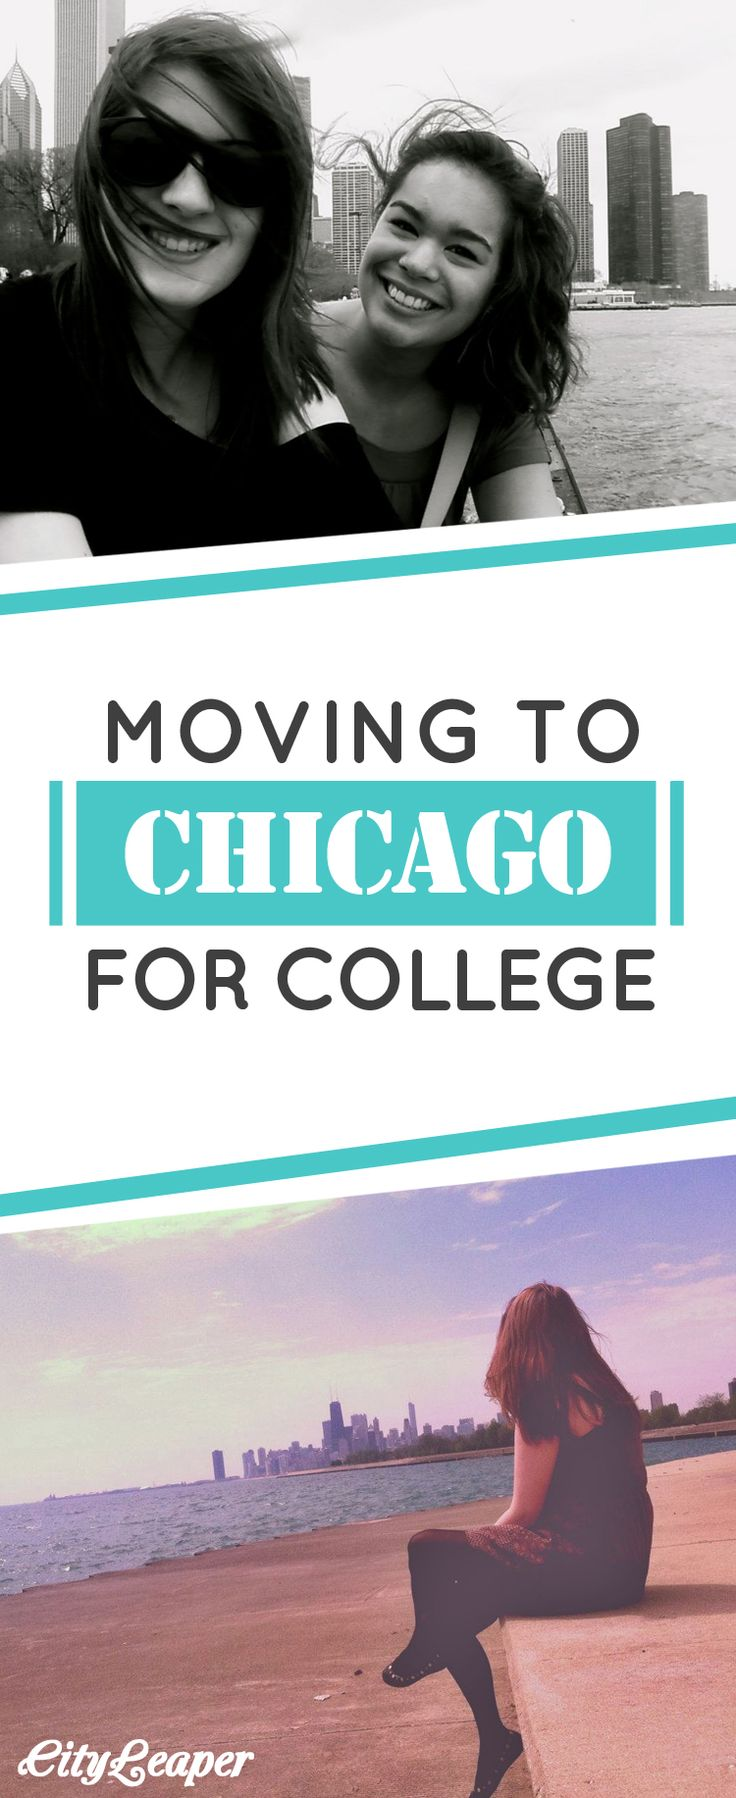 Melissa moved to Chicago to attend Columbia College. Here's her story of adjusting to dorm life, college parties, and attaining her Bachelors in Cinema Arts.